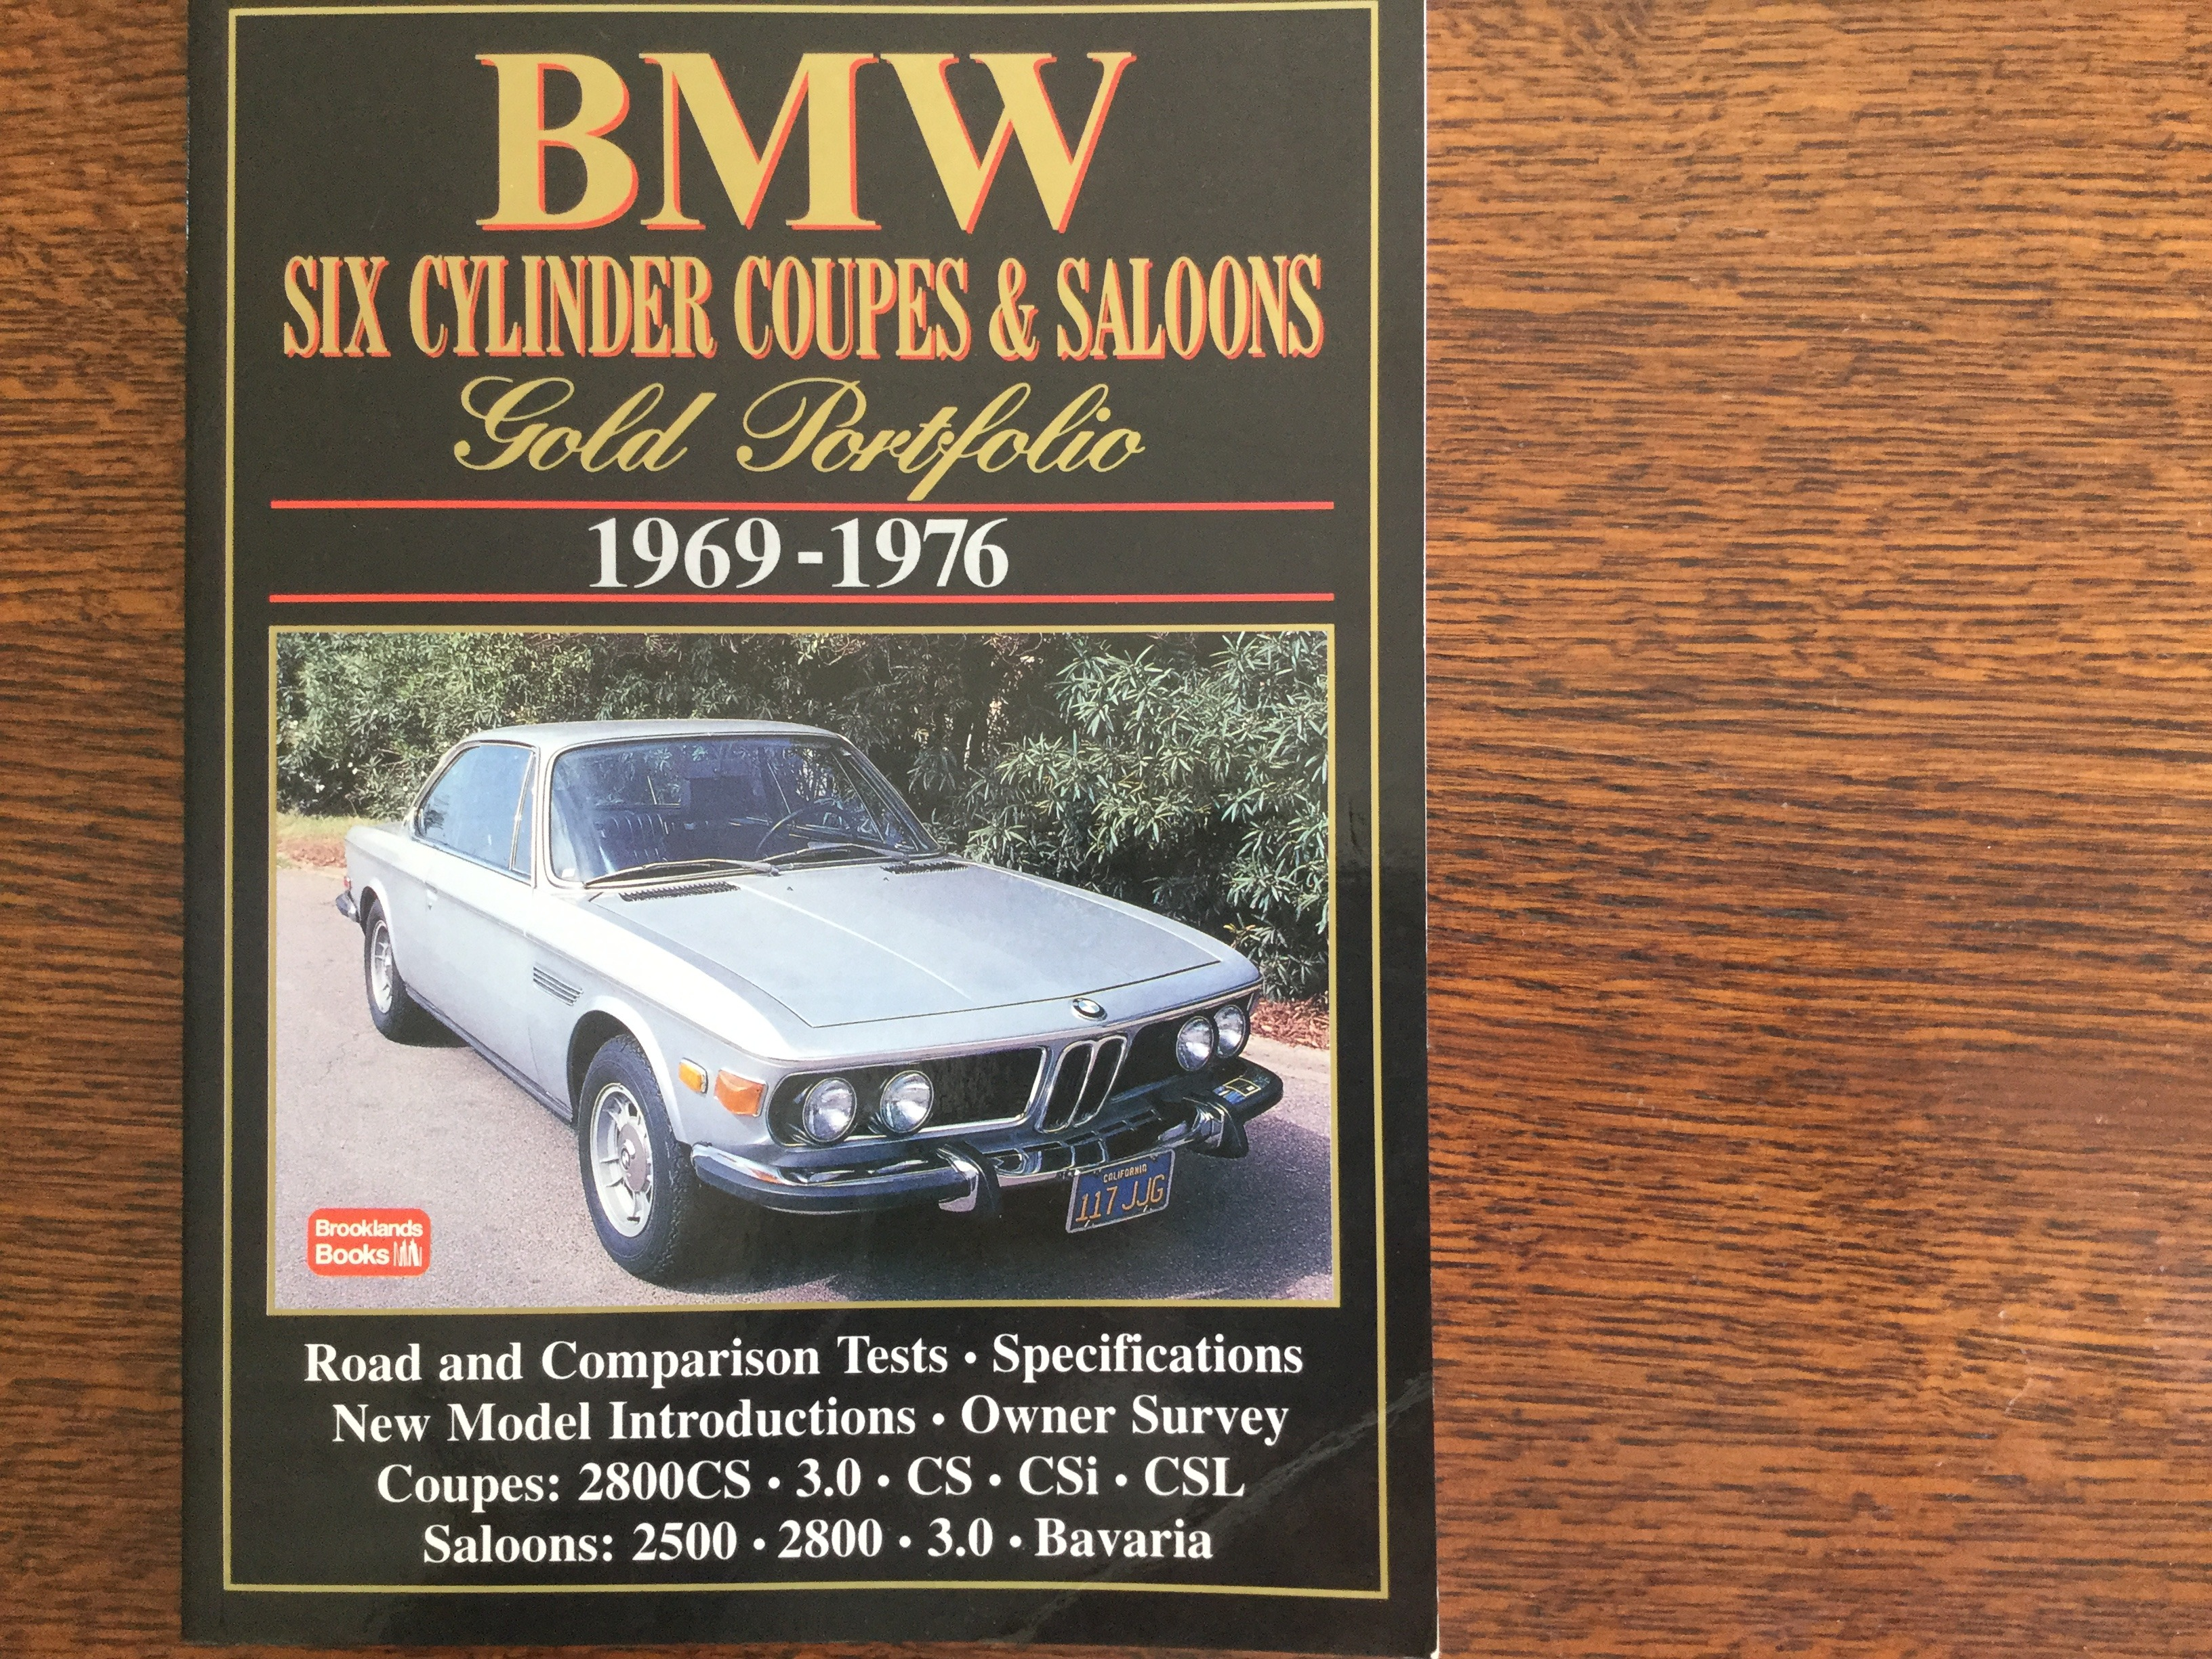 BMW Six Cylinder Coupes & Saloons